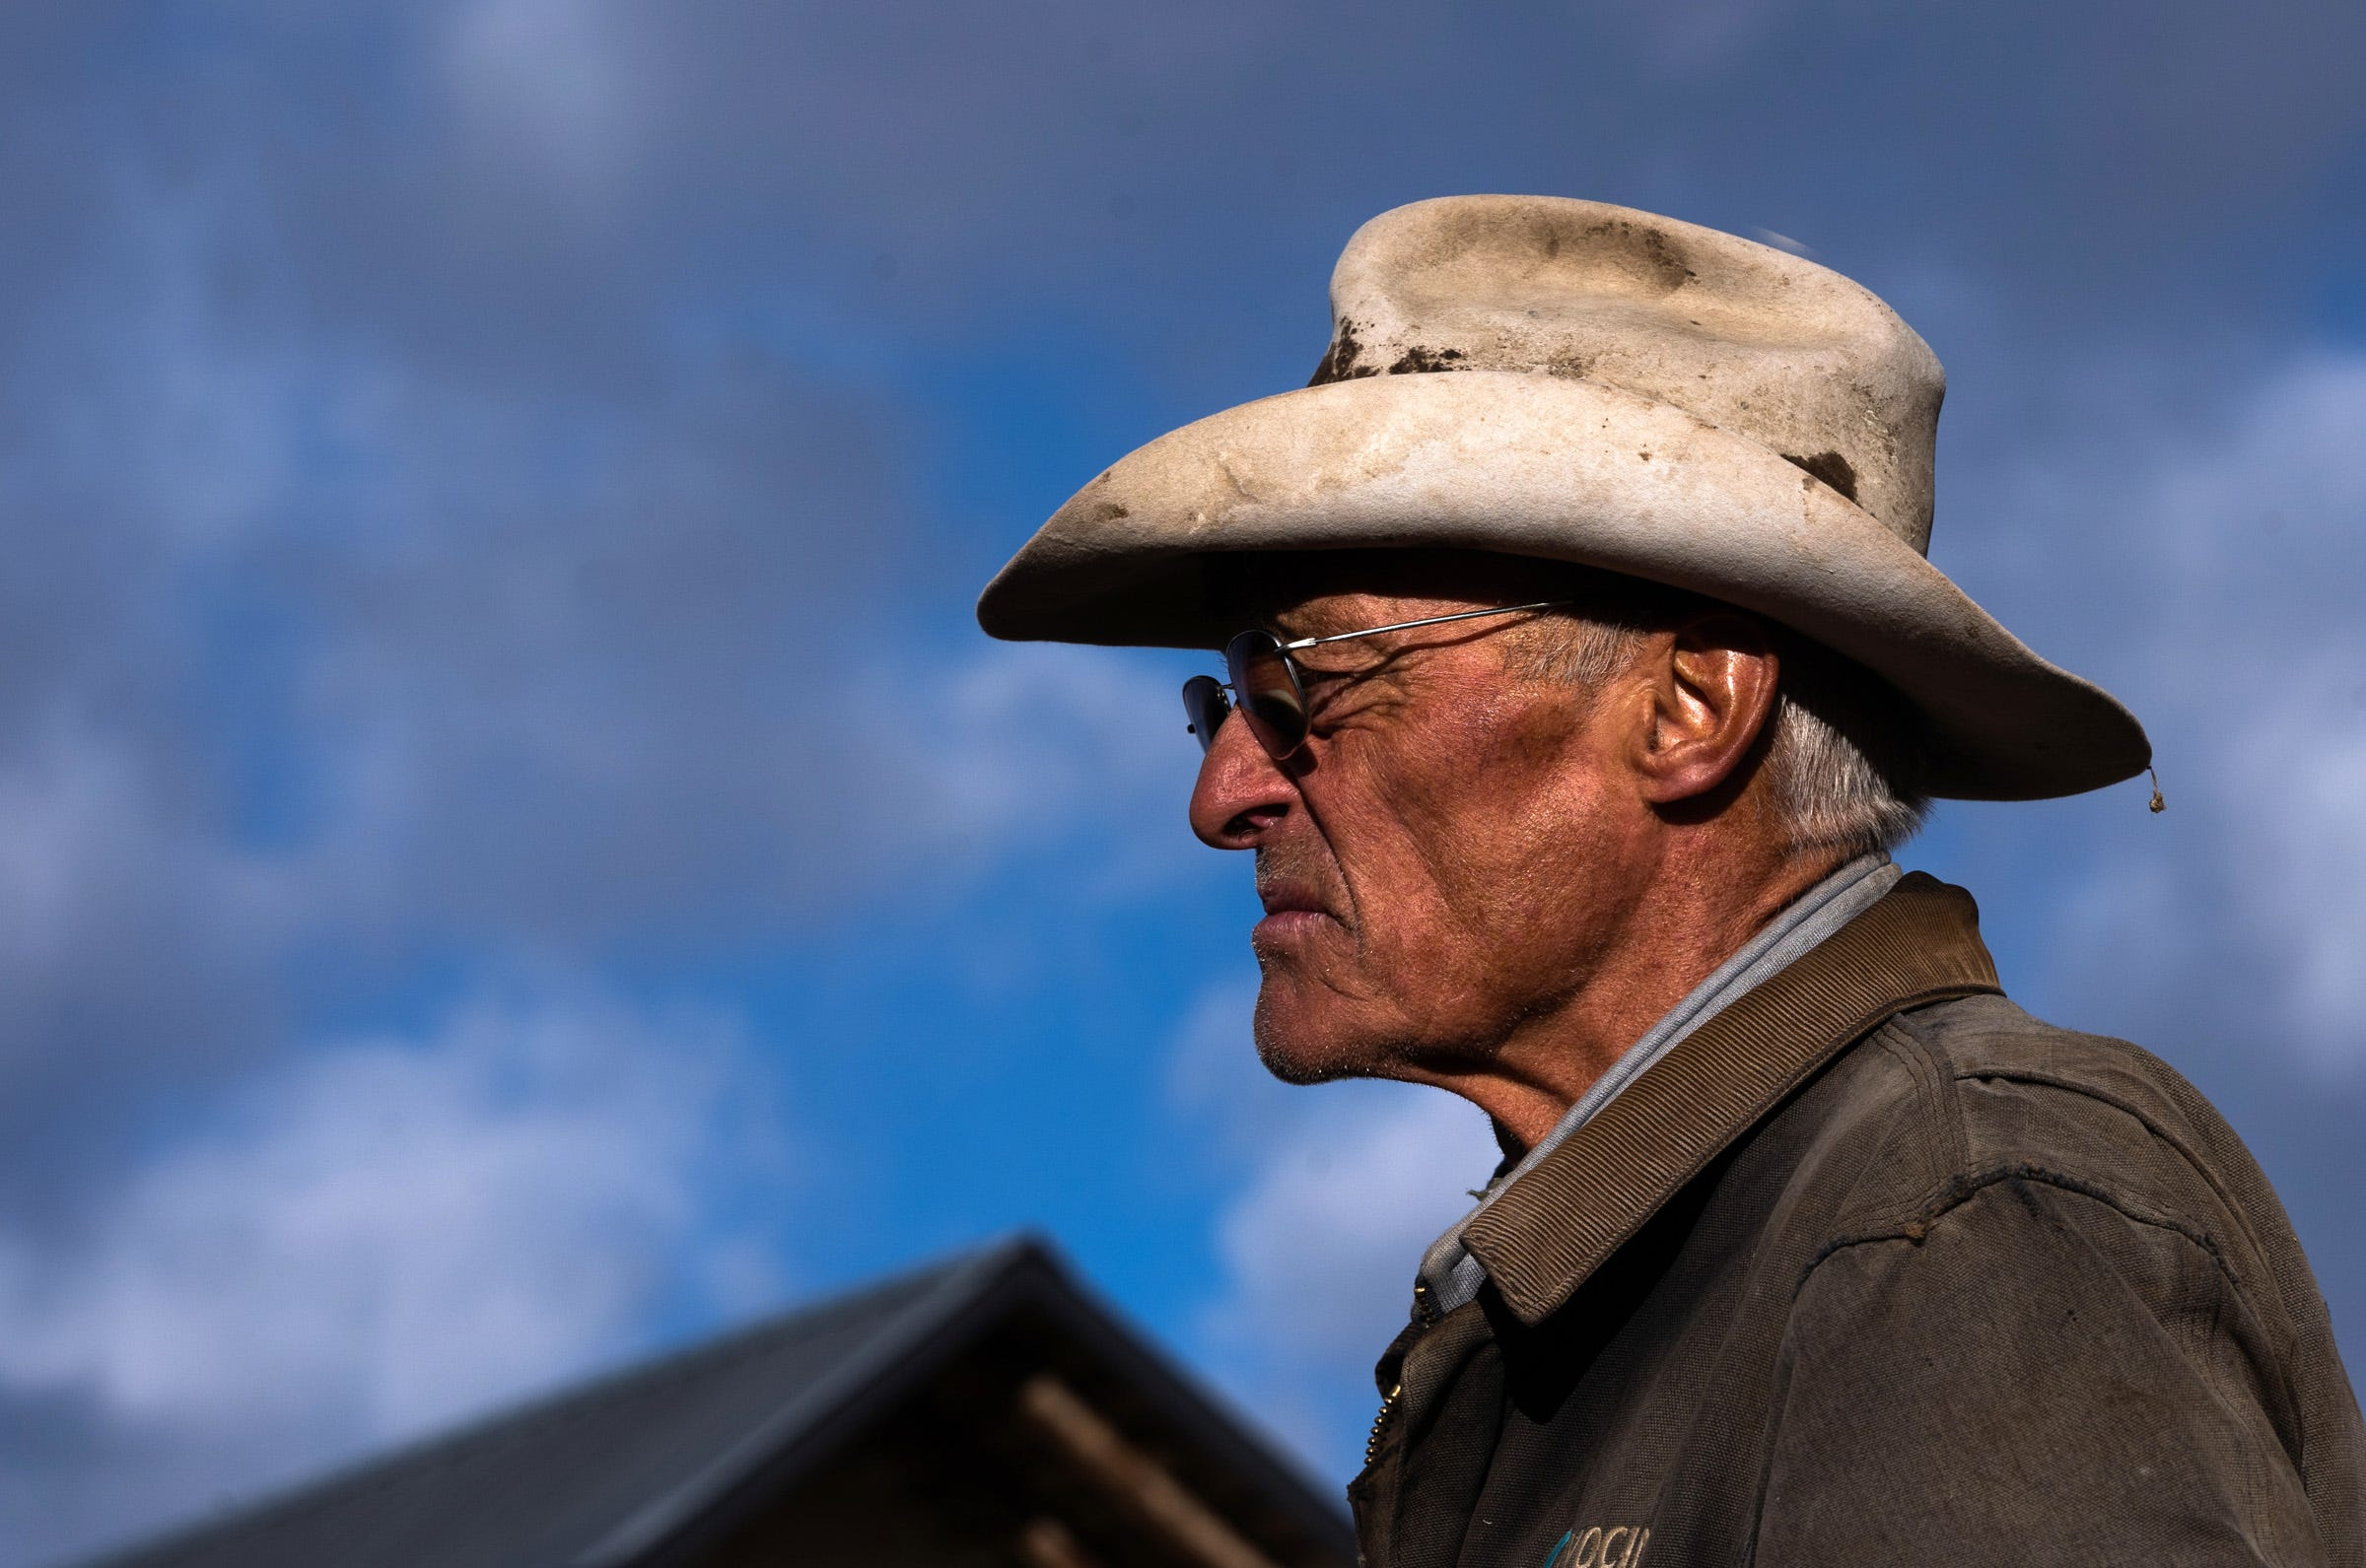 Rancher Bill Trampe, a board member of the Colorado River District, raises cattle near Gunnison, Colorado. He and other ranchers have received less water recently to irrigate their pastures, forcing many to buy hay.